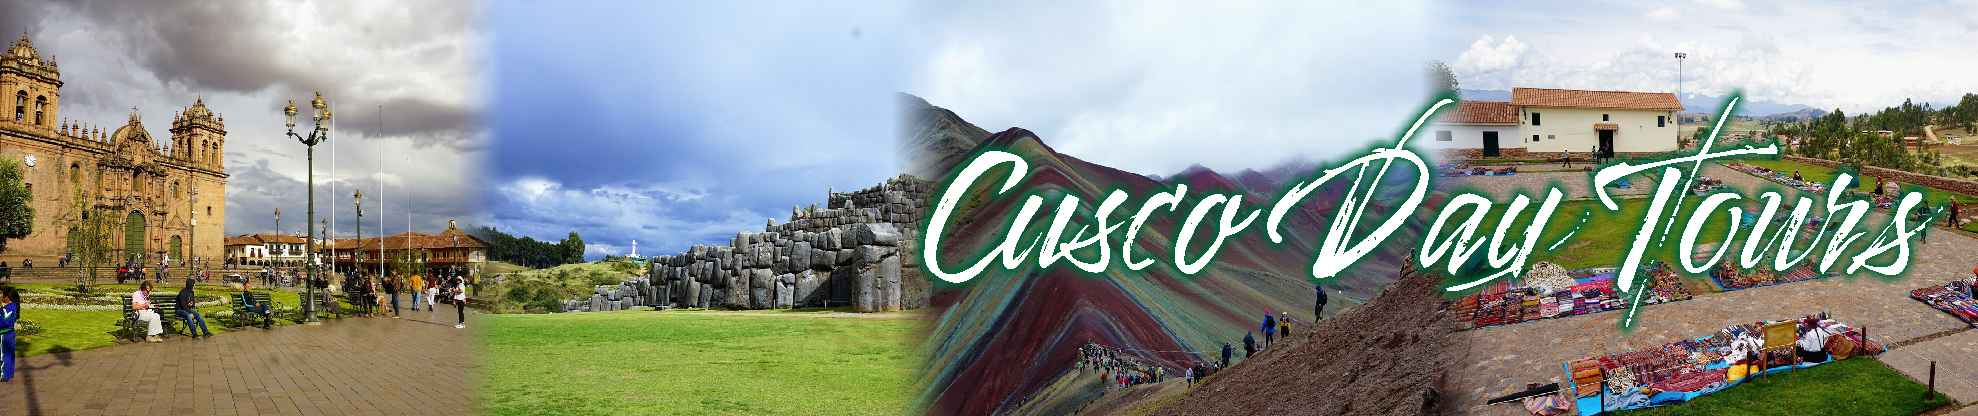 Cusco Day Tours | City Tour, Ollantaytambo, Rainbow Mountain